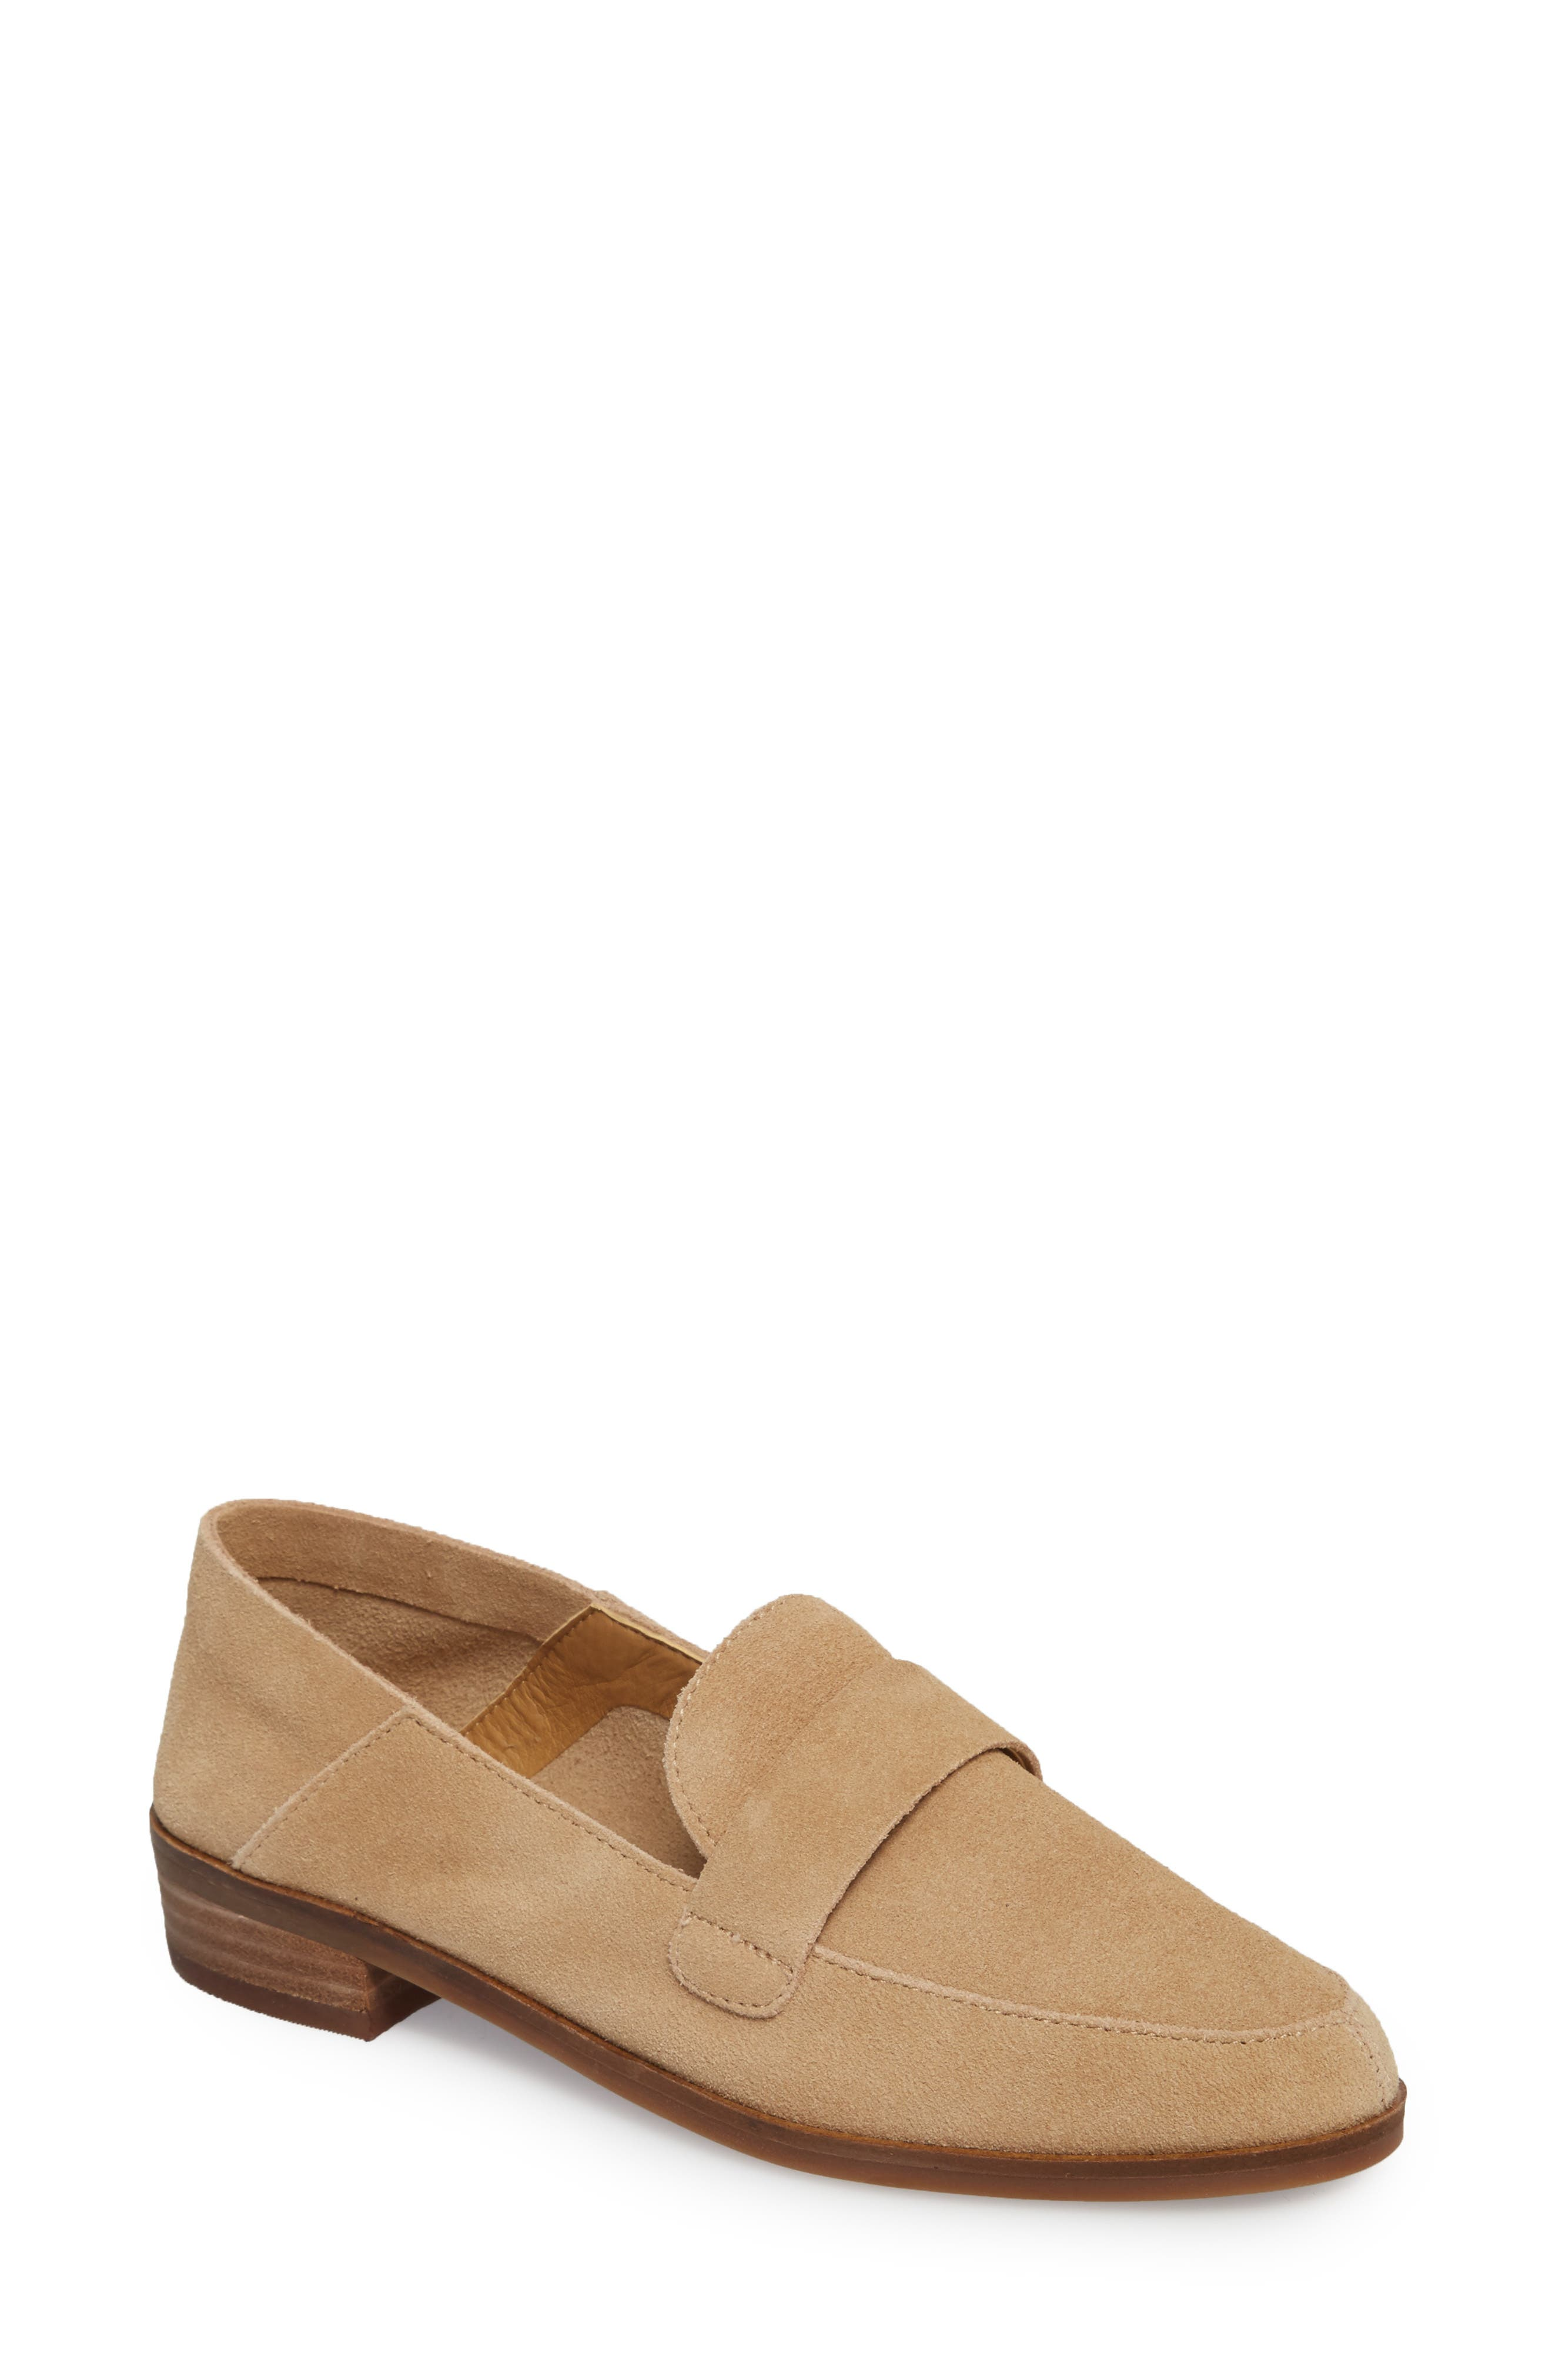 Main Image - Lucky Brand Chennie Loafer (Women)